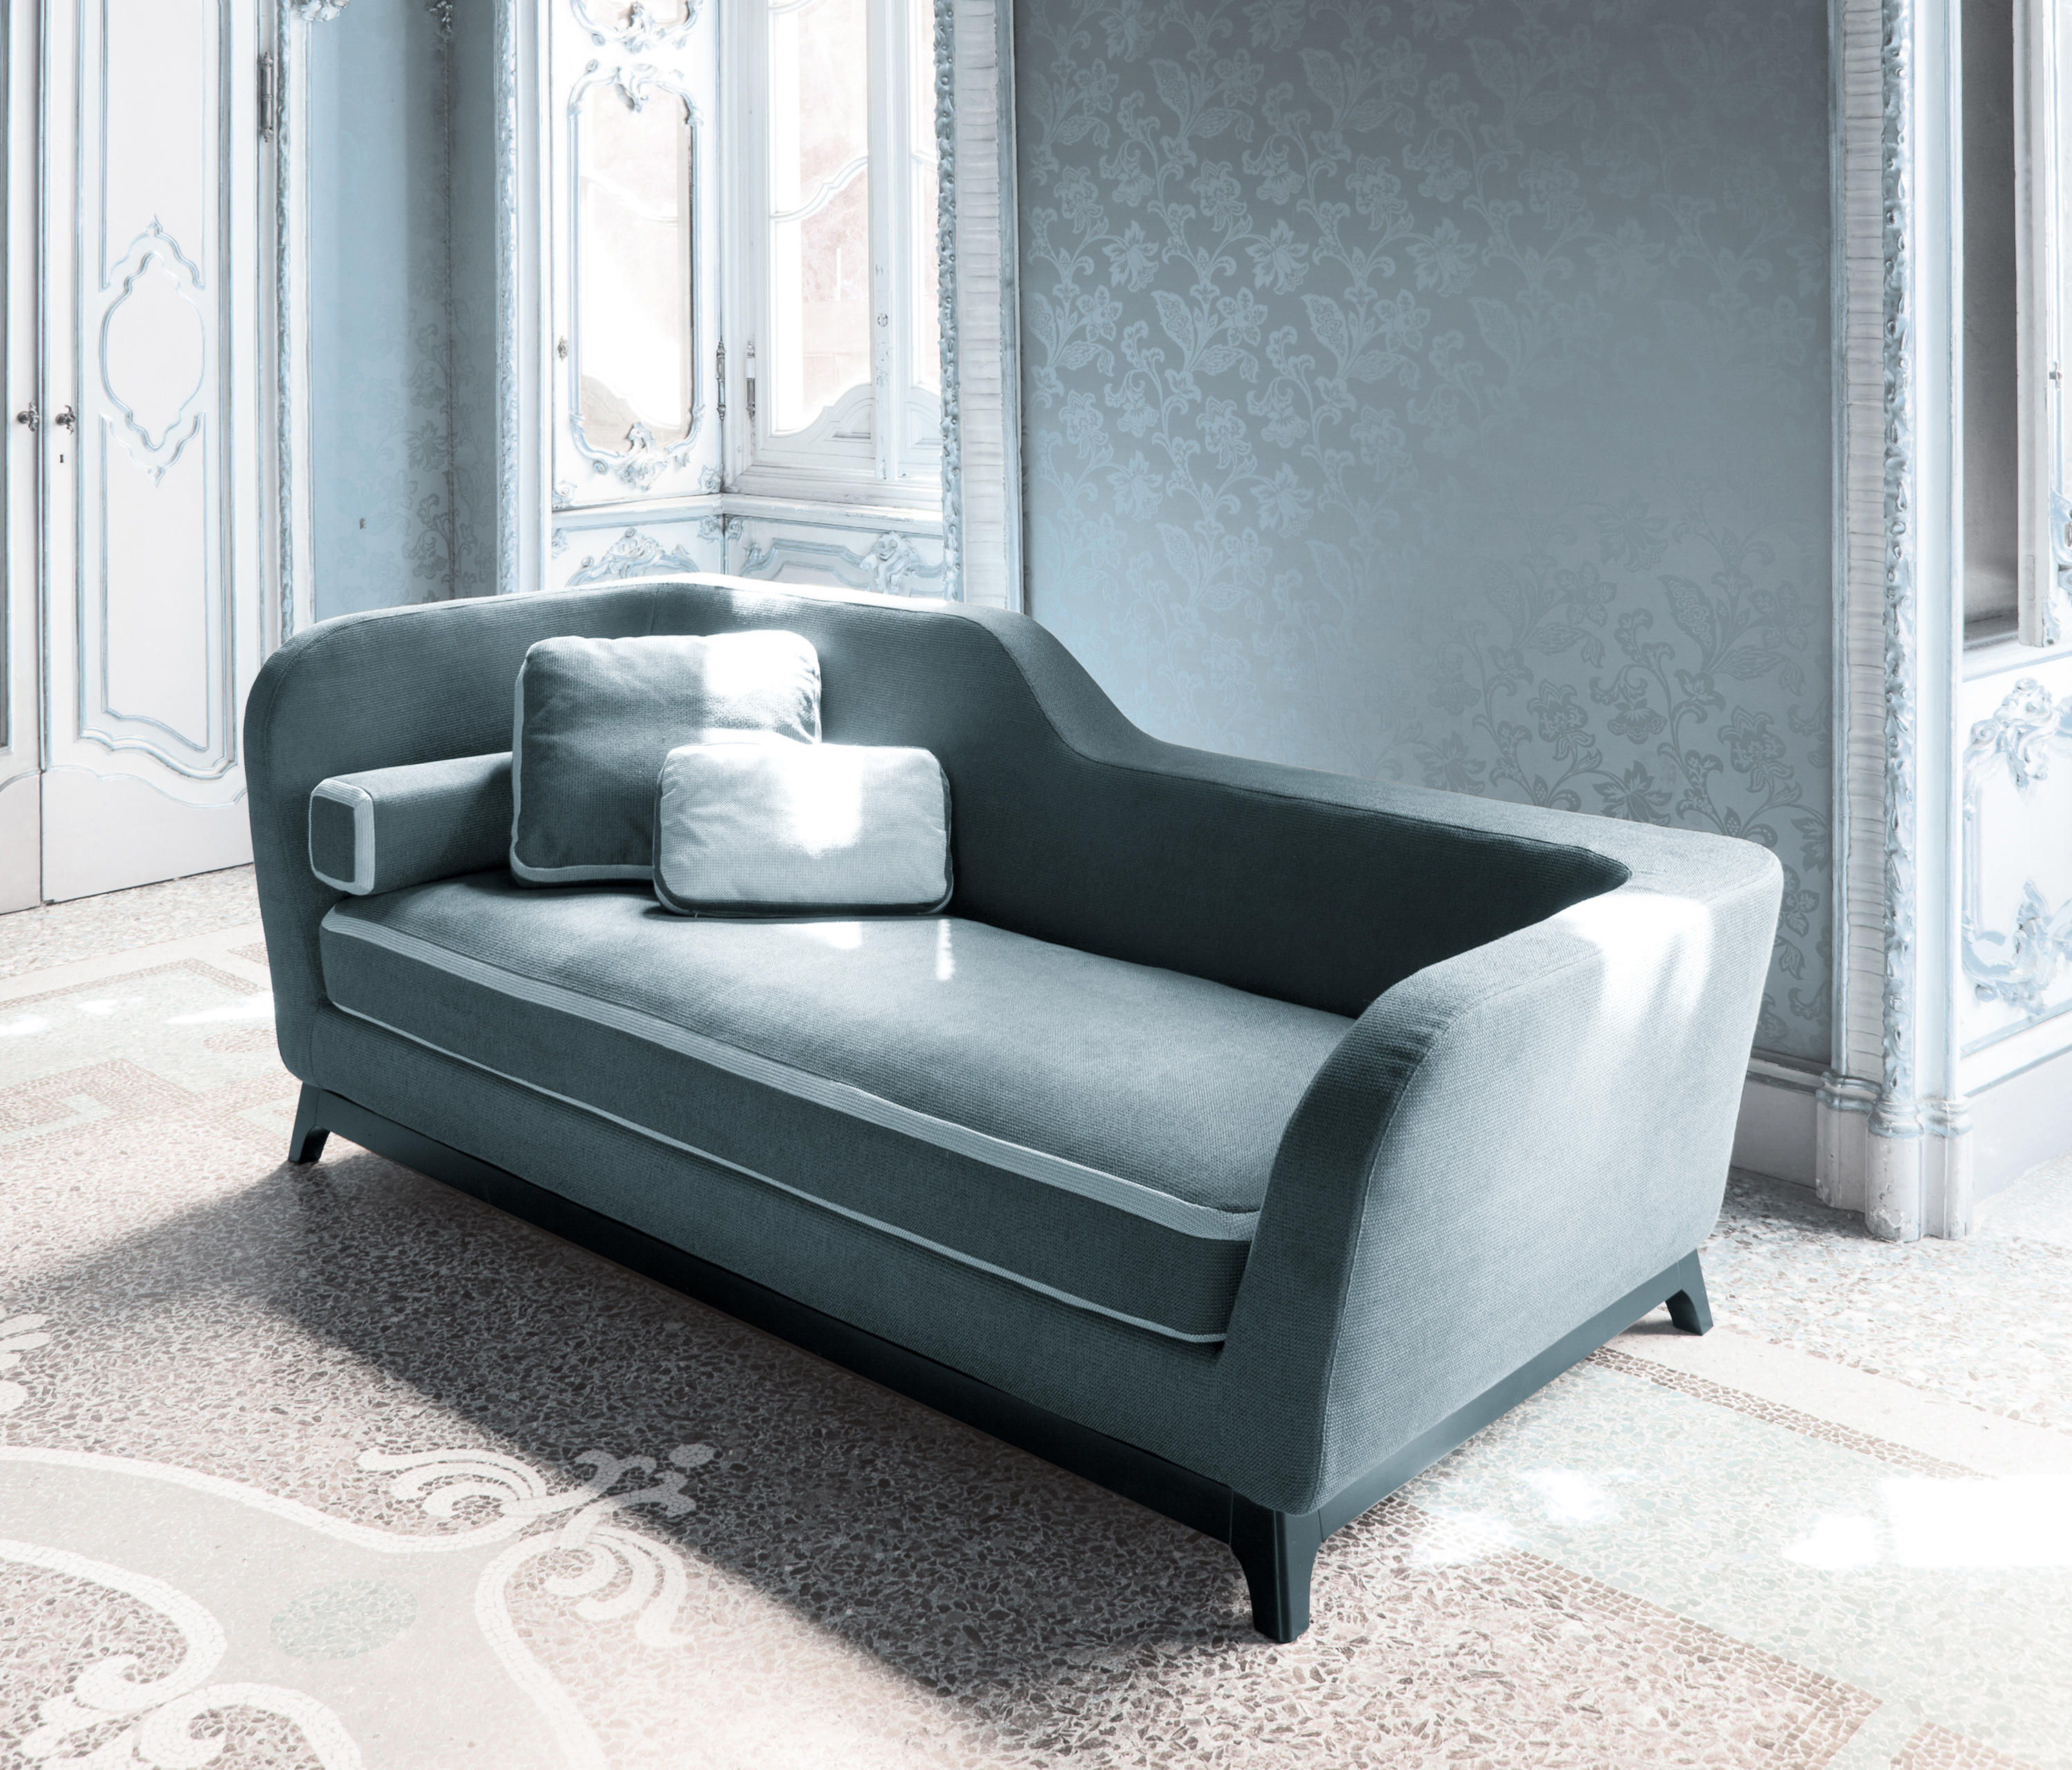 jeremie sofa beds from milano bedding architonic. Black Bedroom Furniture Sets. Home Design Ideas